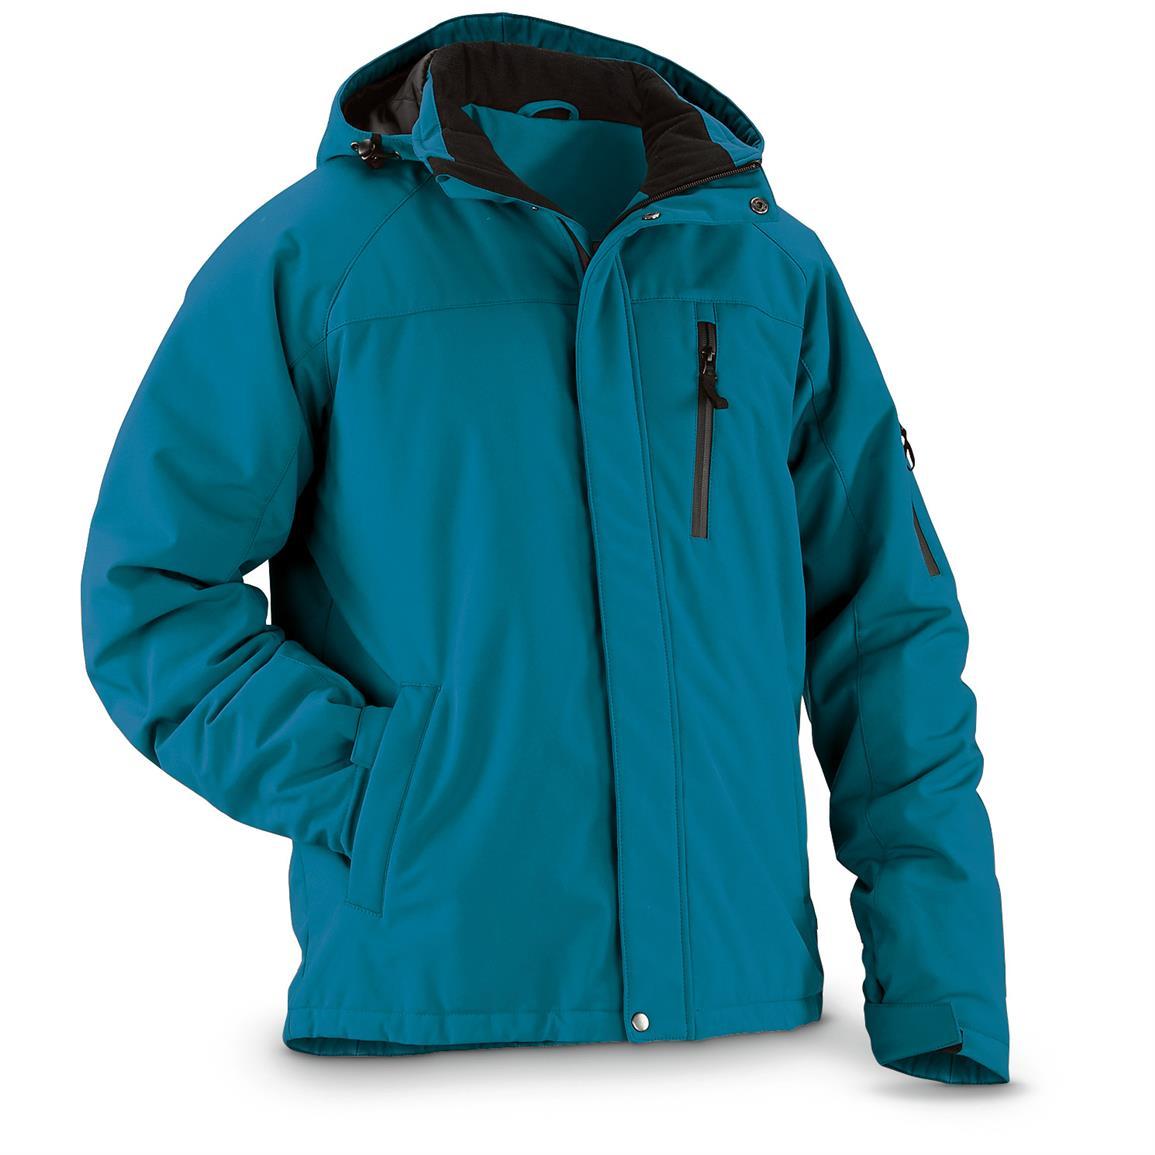 Guide Gear Men's Siberian Jacket, Sea Blue